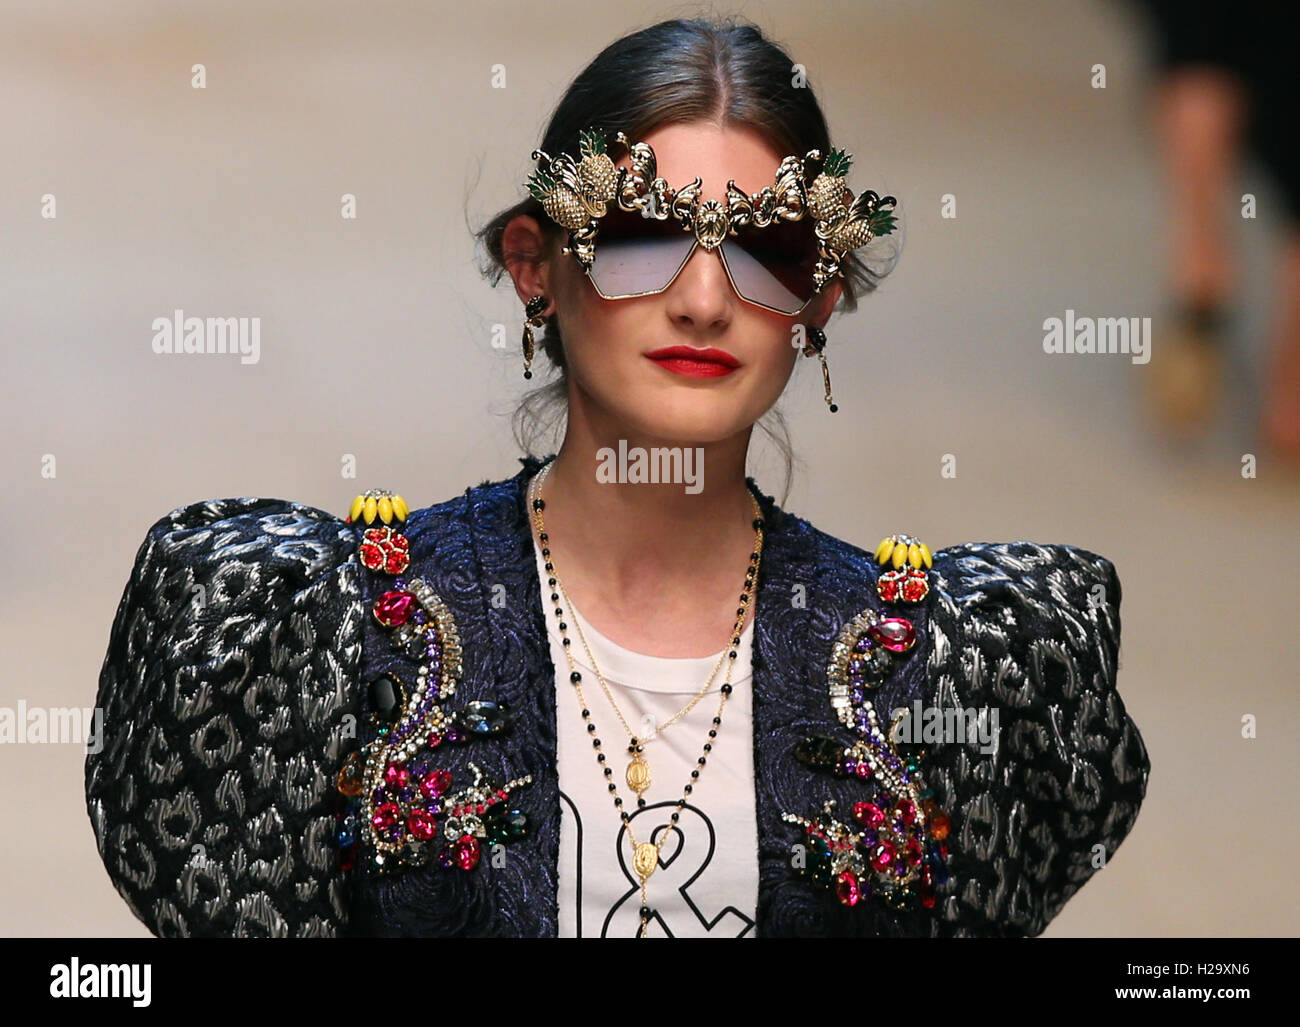 Milan, Italy. 25th Sep, 2016. A model walks the runway during the Dolce&Gabbana fashion show as part of Milan - Stock Image